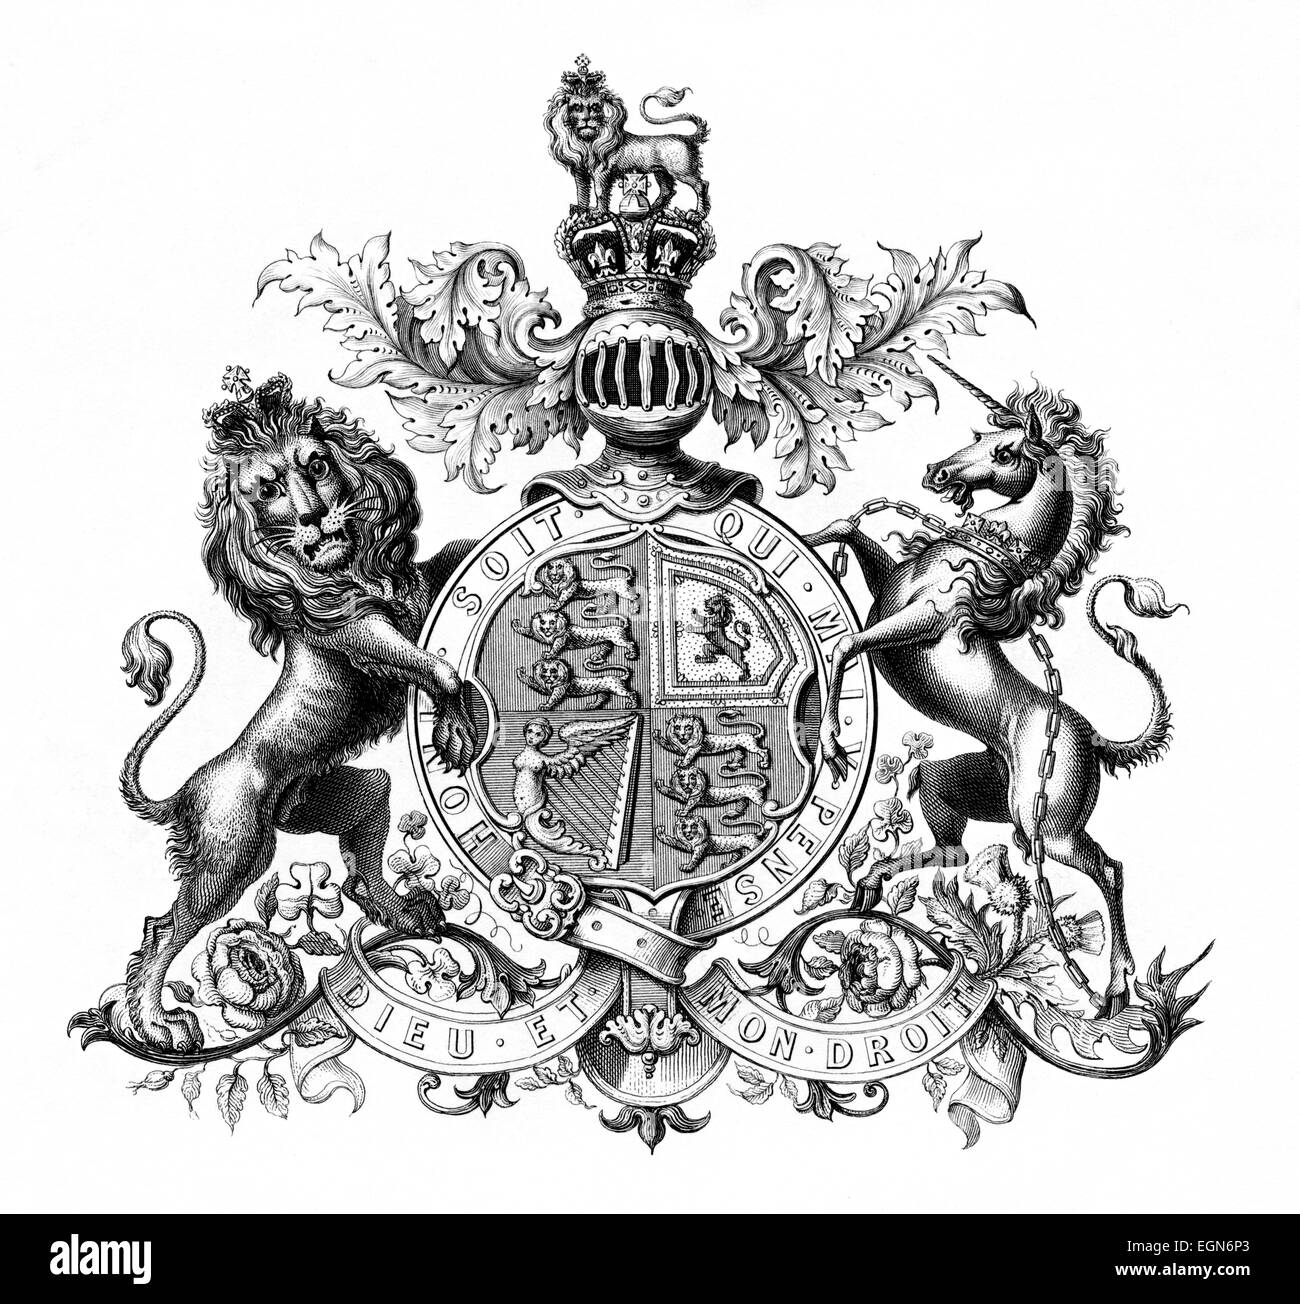 An Engraving Of The Uk Royal Coat Of Arms Scanned At High